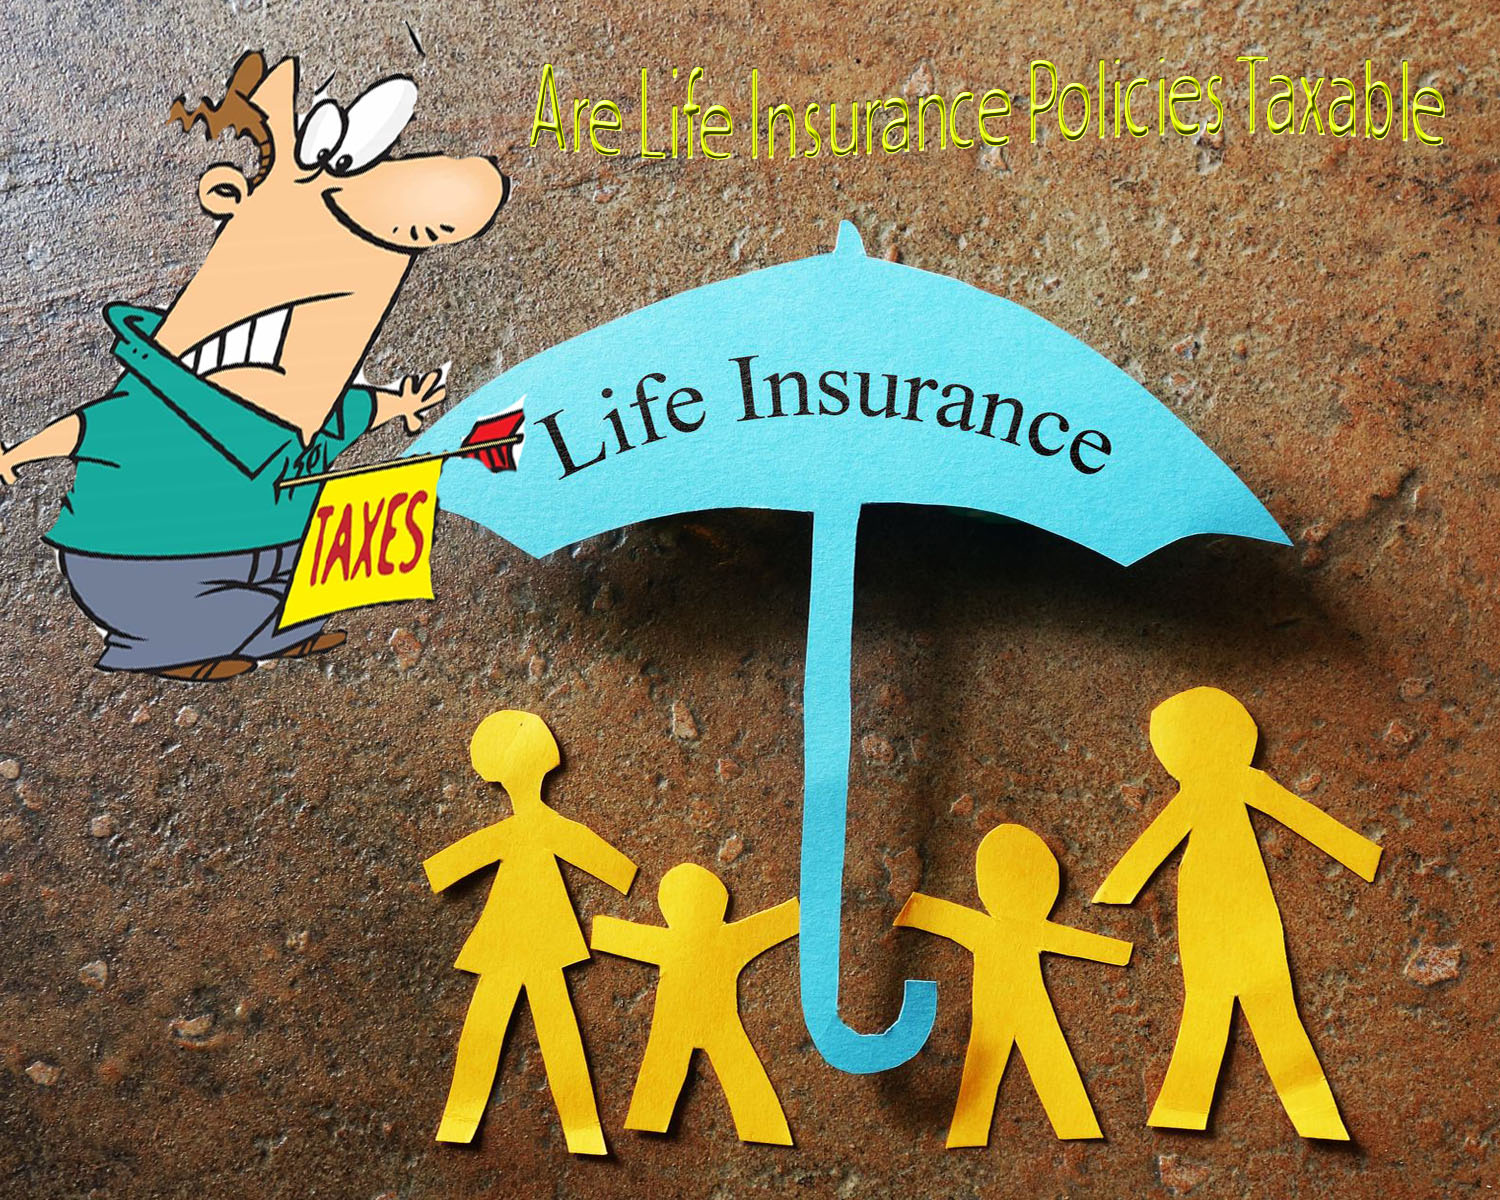 are life insurance policies taxable?